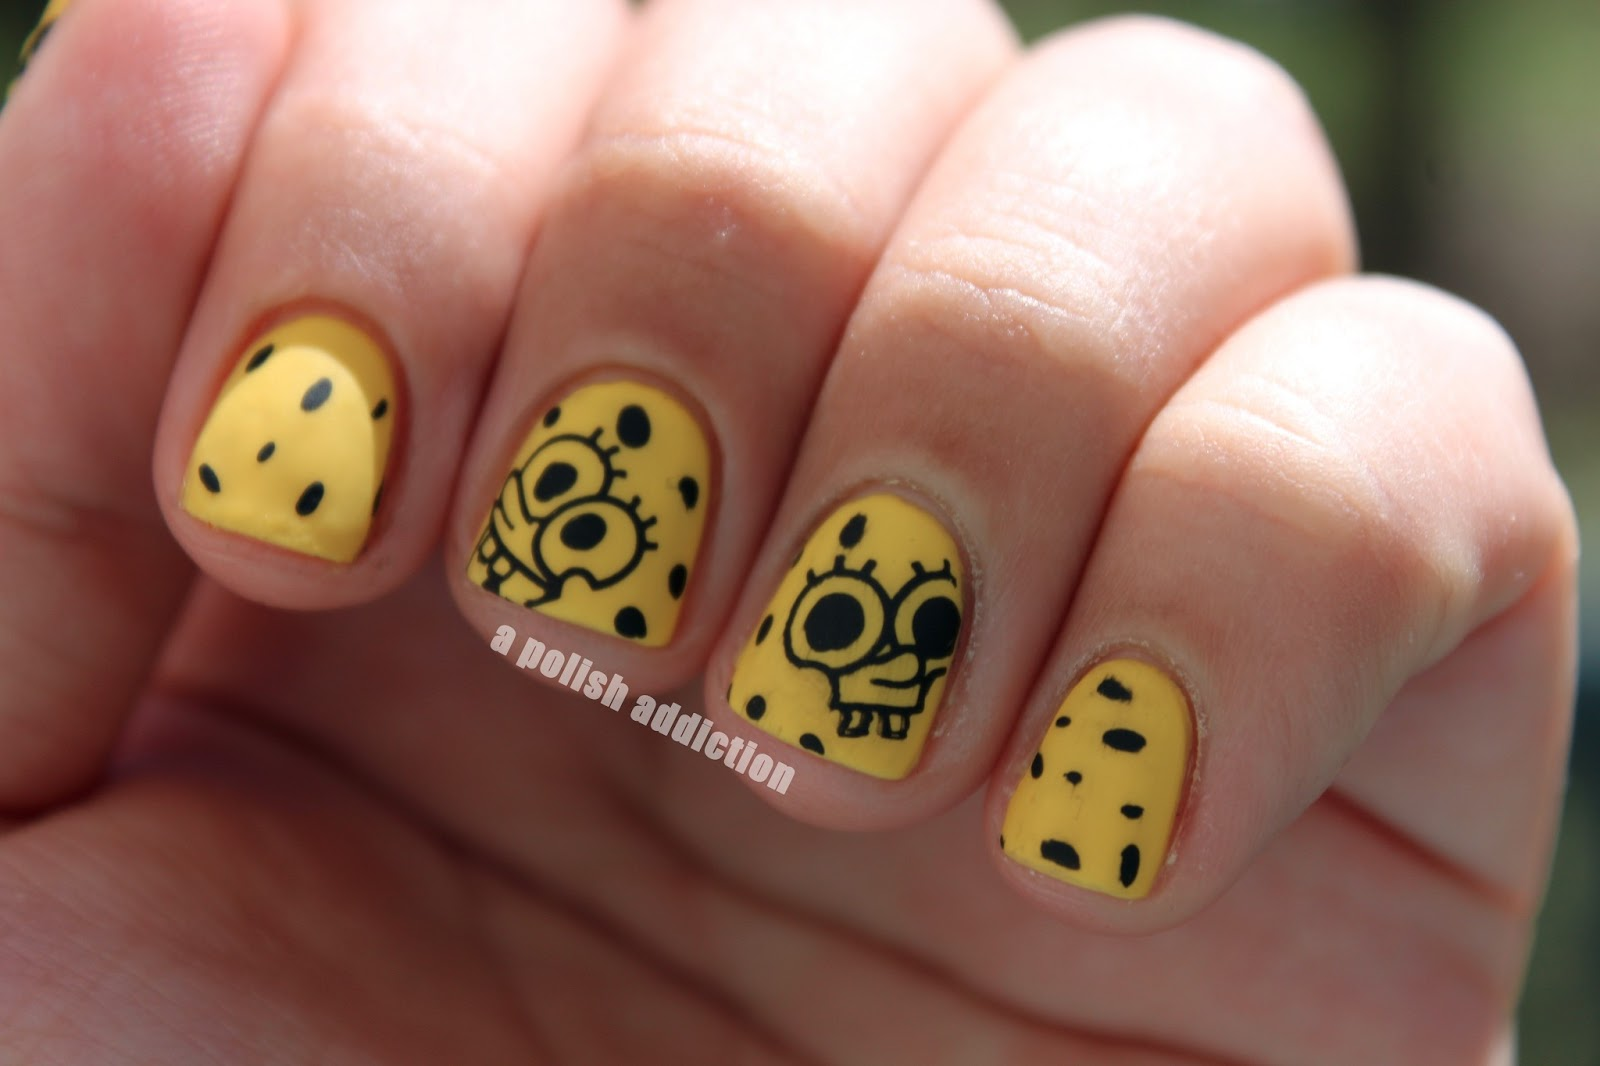 A polish addiction may 2013 who lives in a pineapple under the sea spongebob nail art prinsesfo Image collections